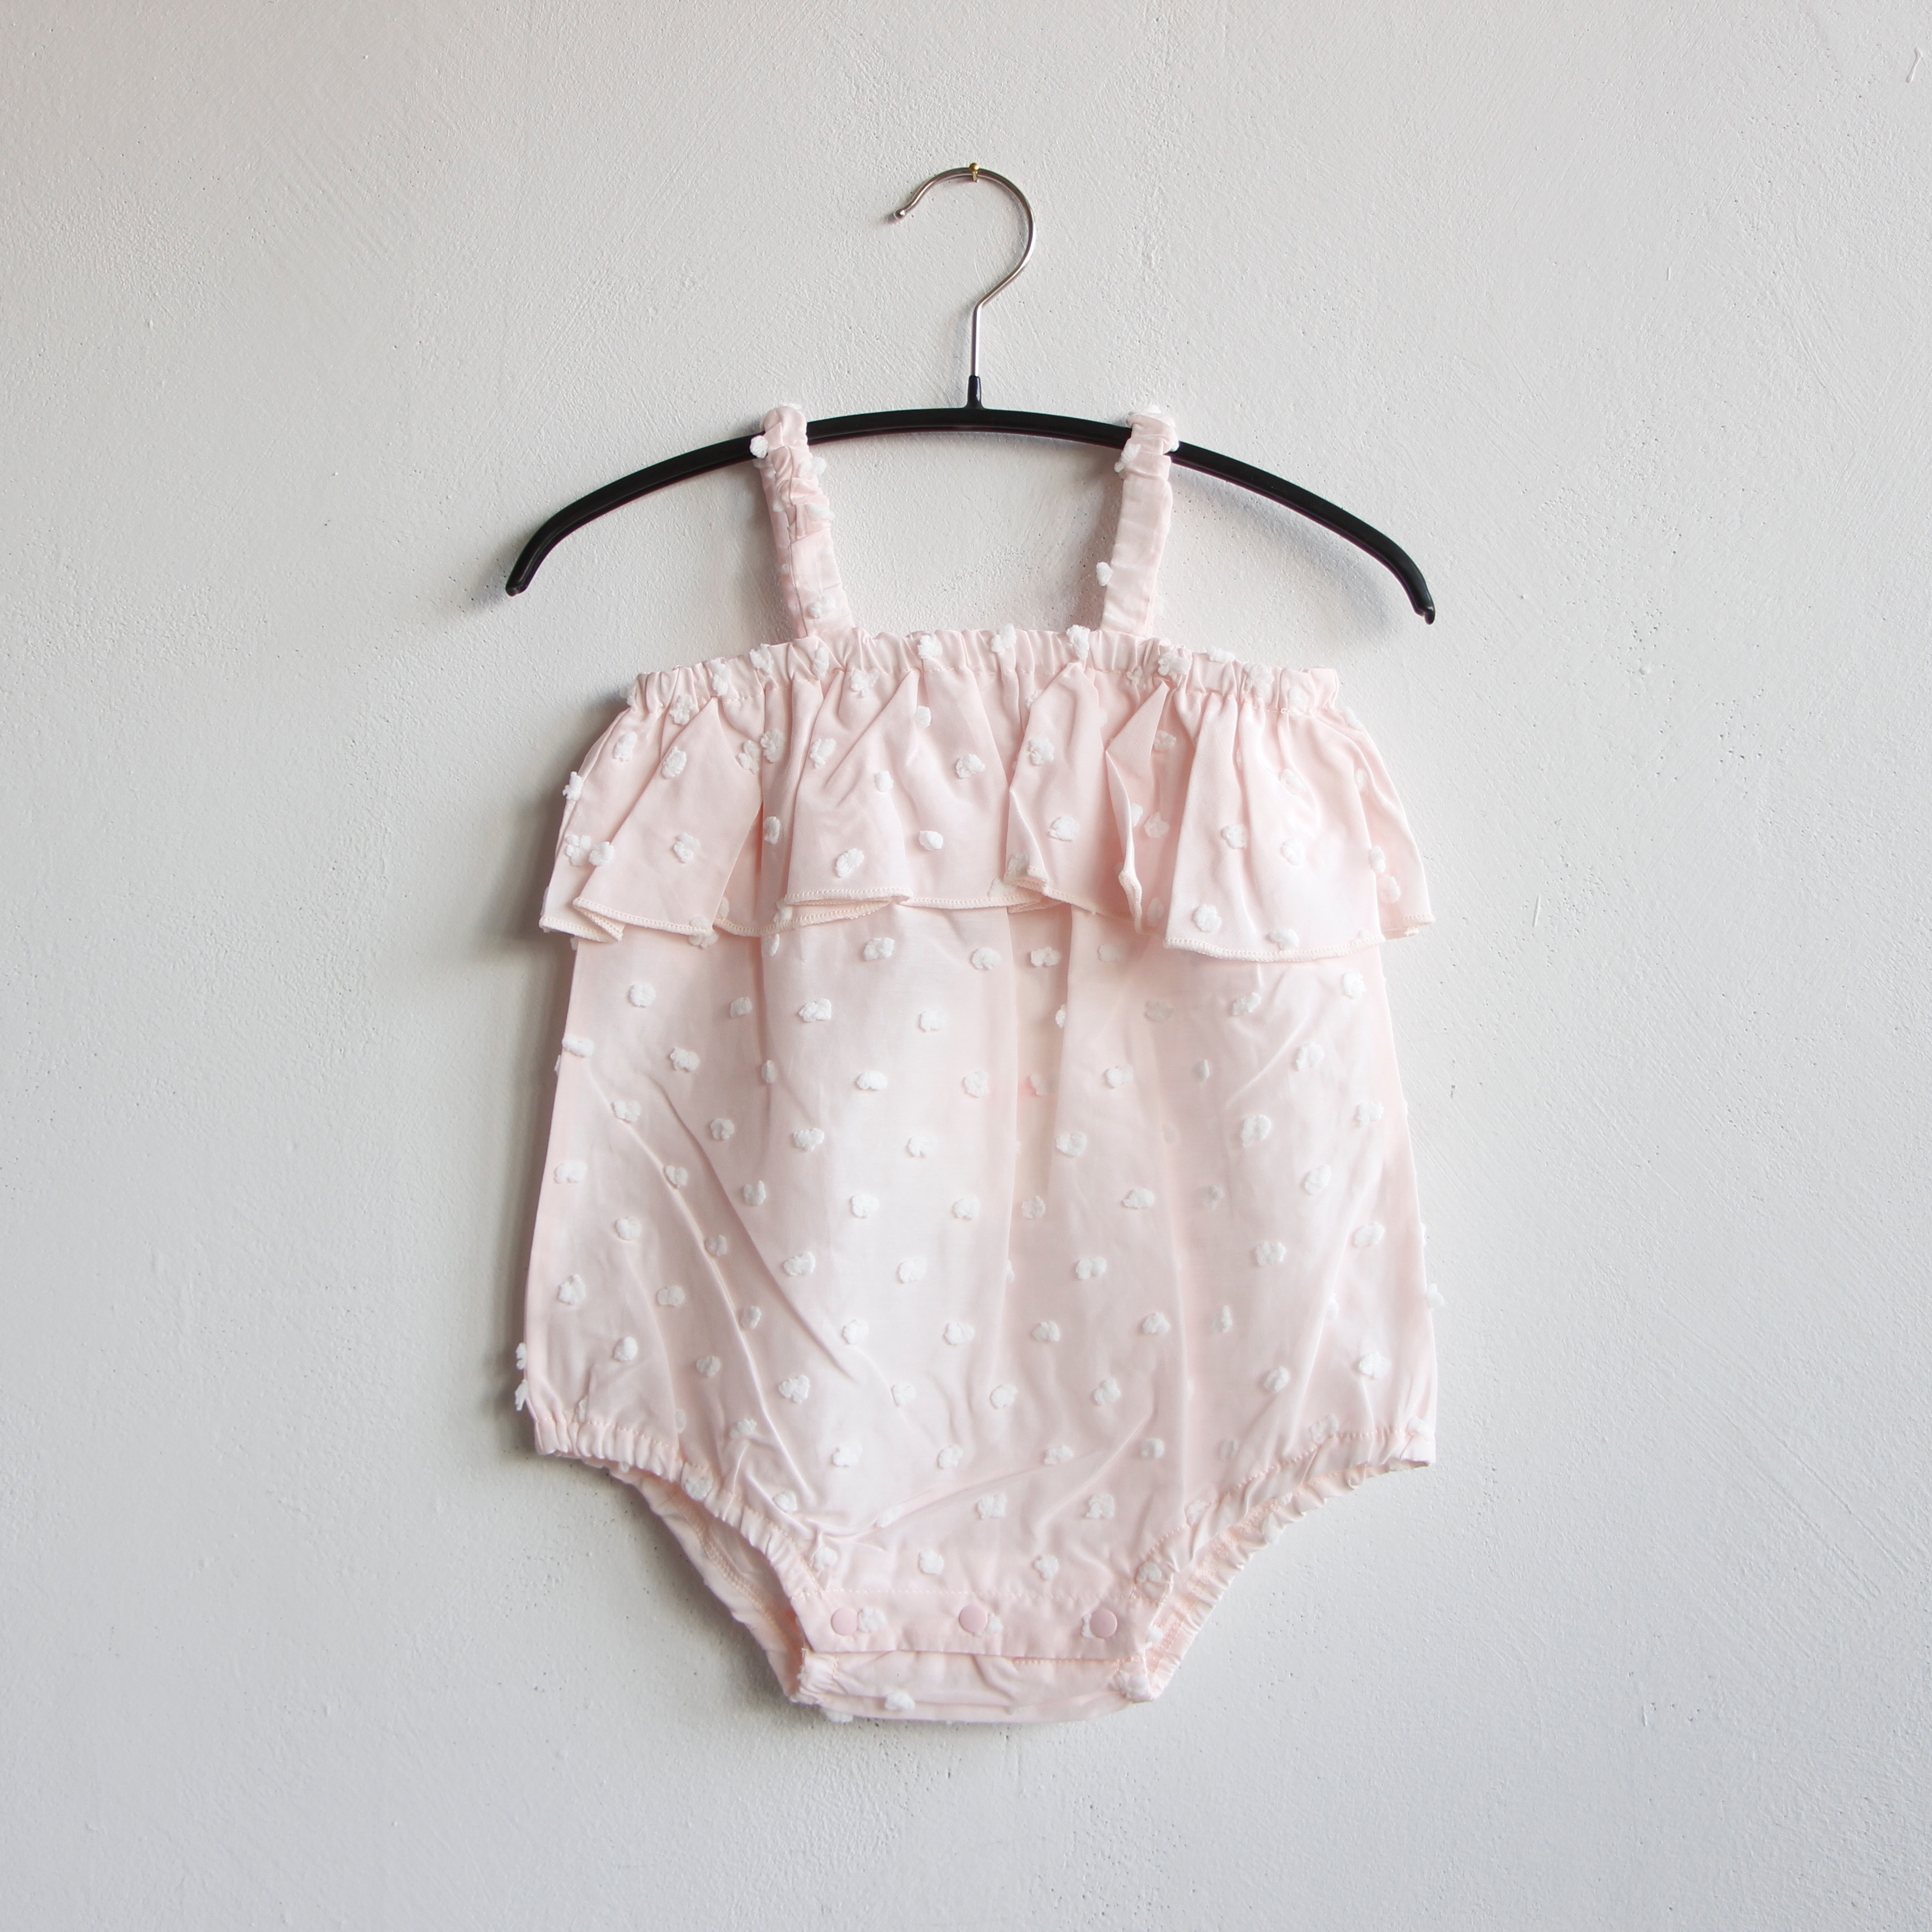 《frankygrow 2020SS》BONBON CUT JQ CAMISOLE GATHER BODY / pink × beige bonbon / 70・80cm